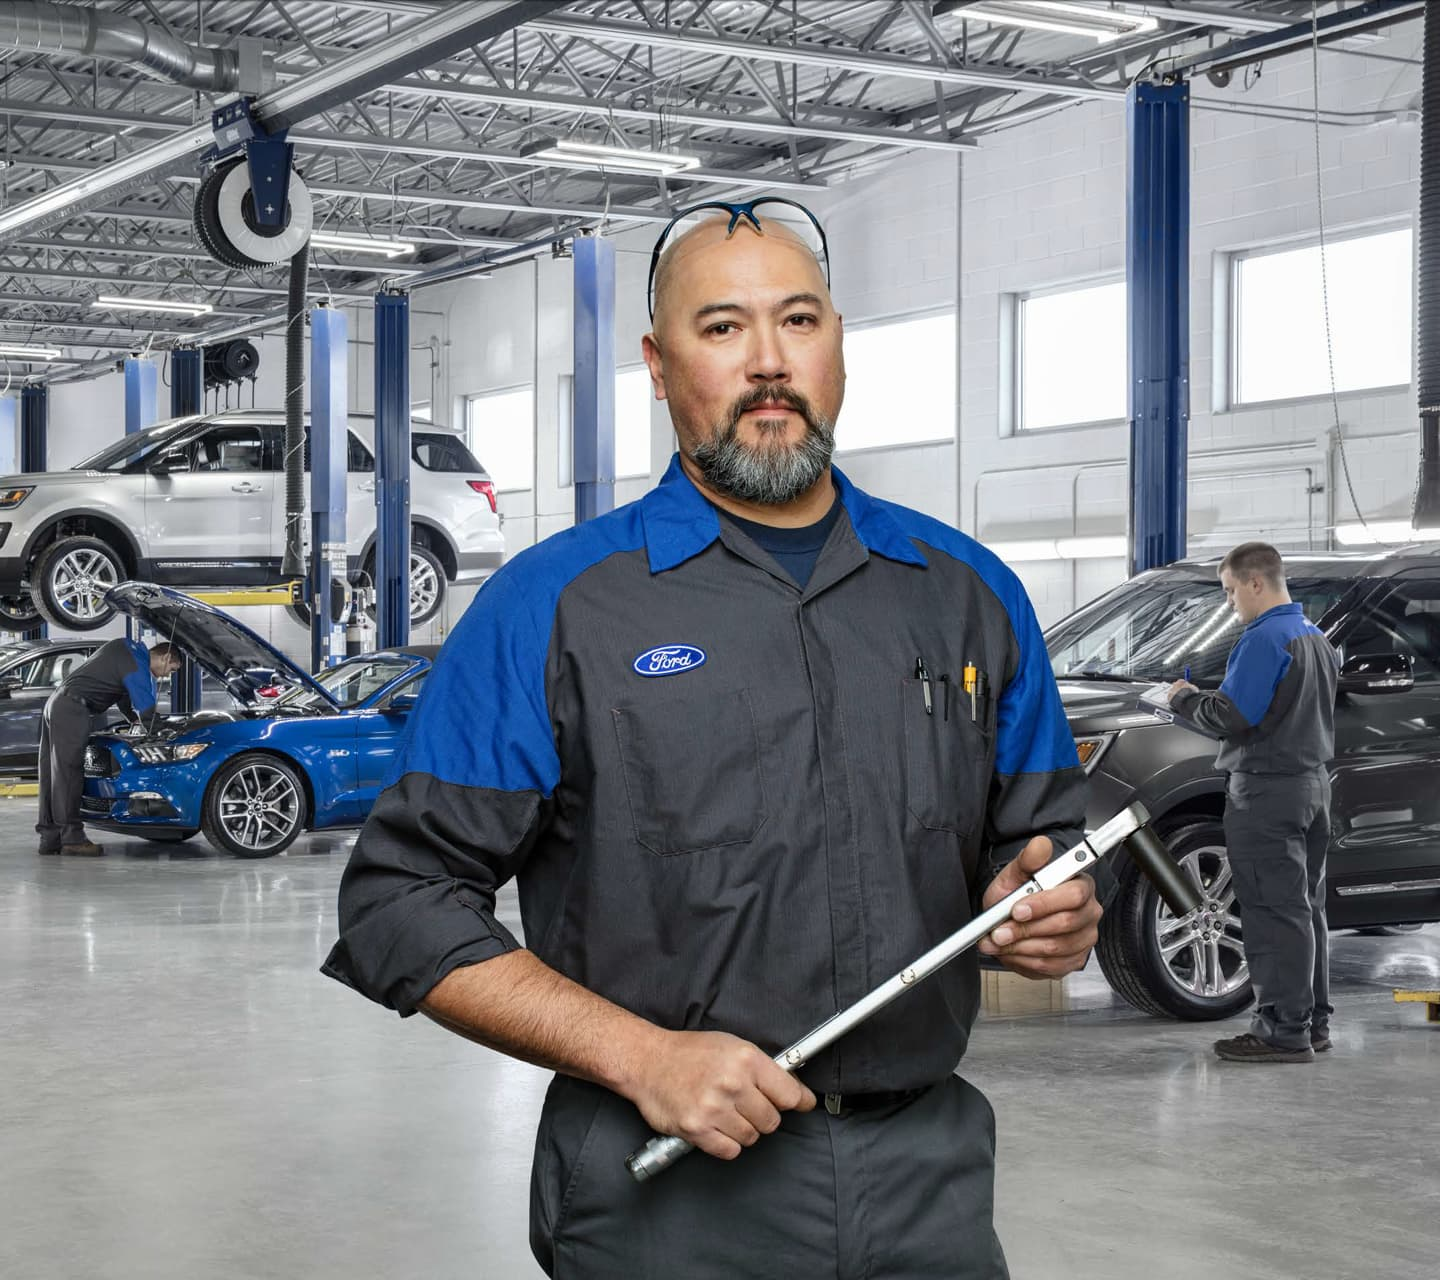 Mechanic holding a tool in the Ford Service Center